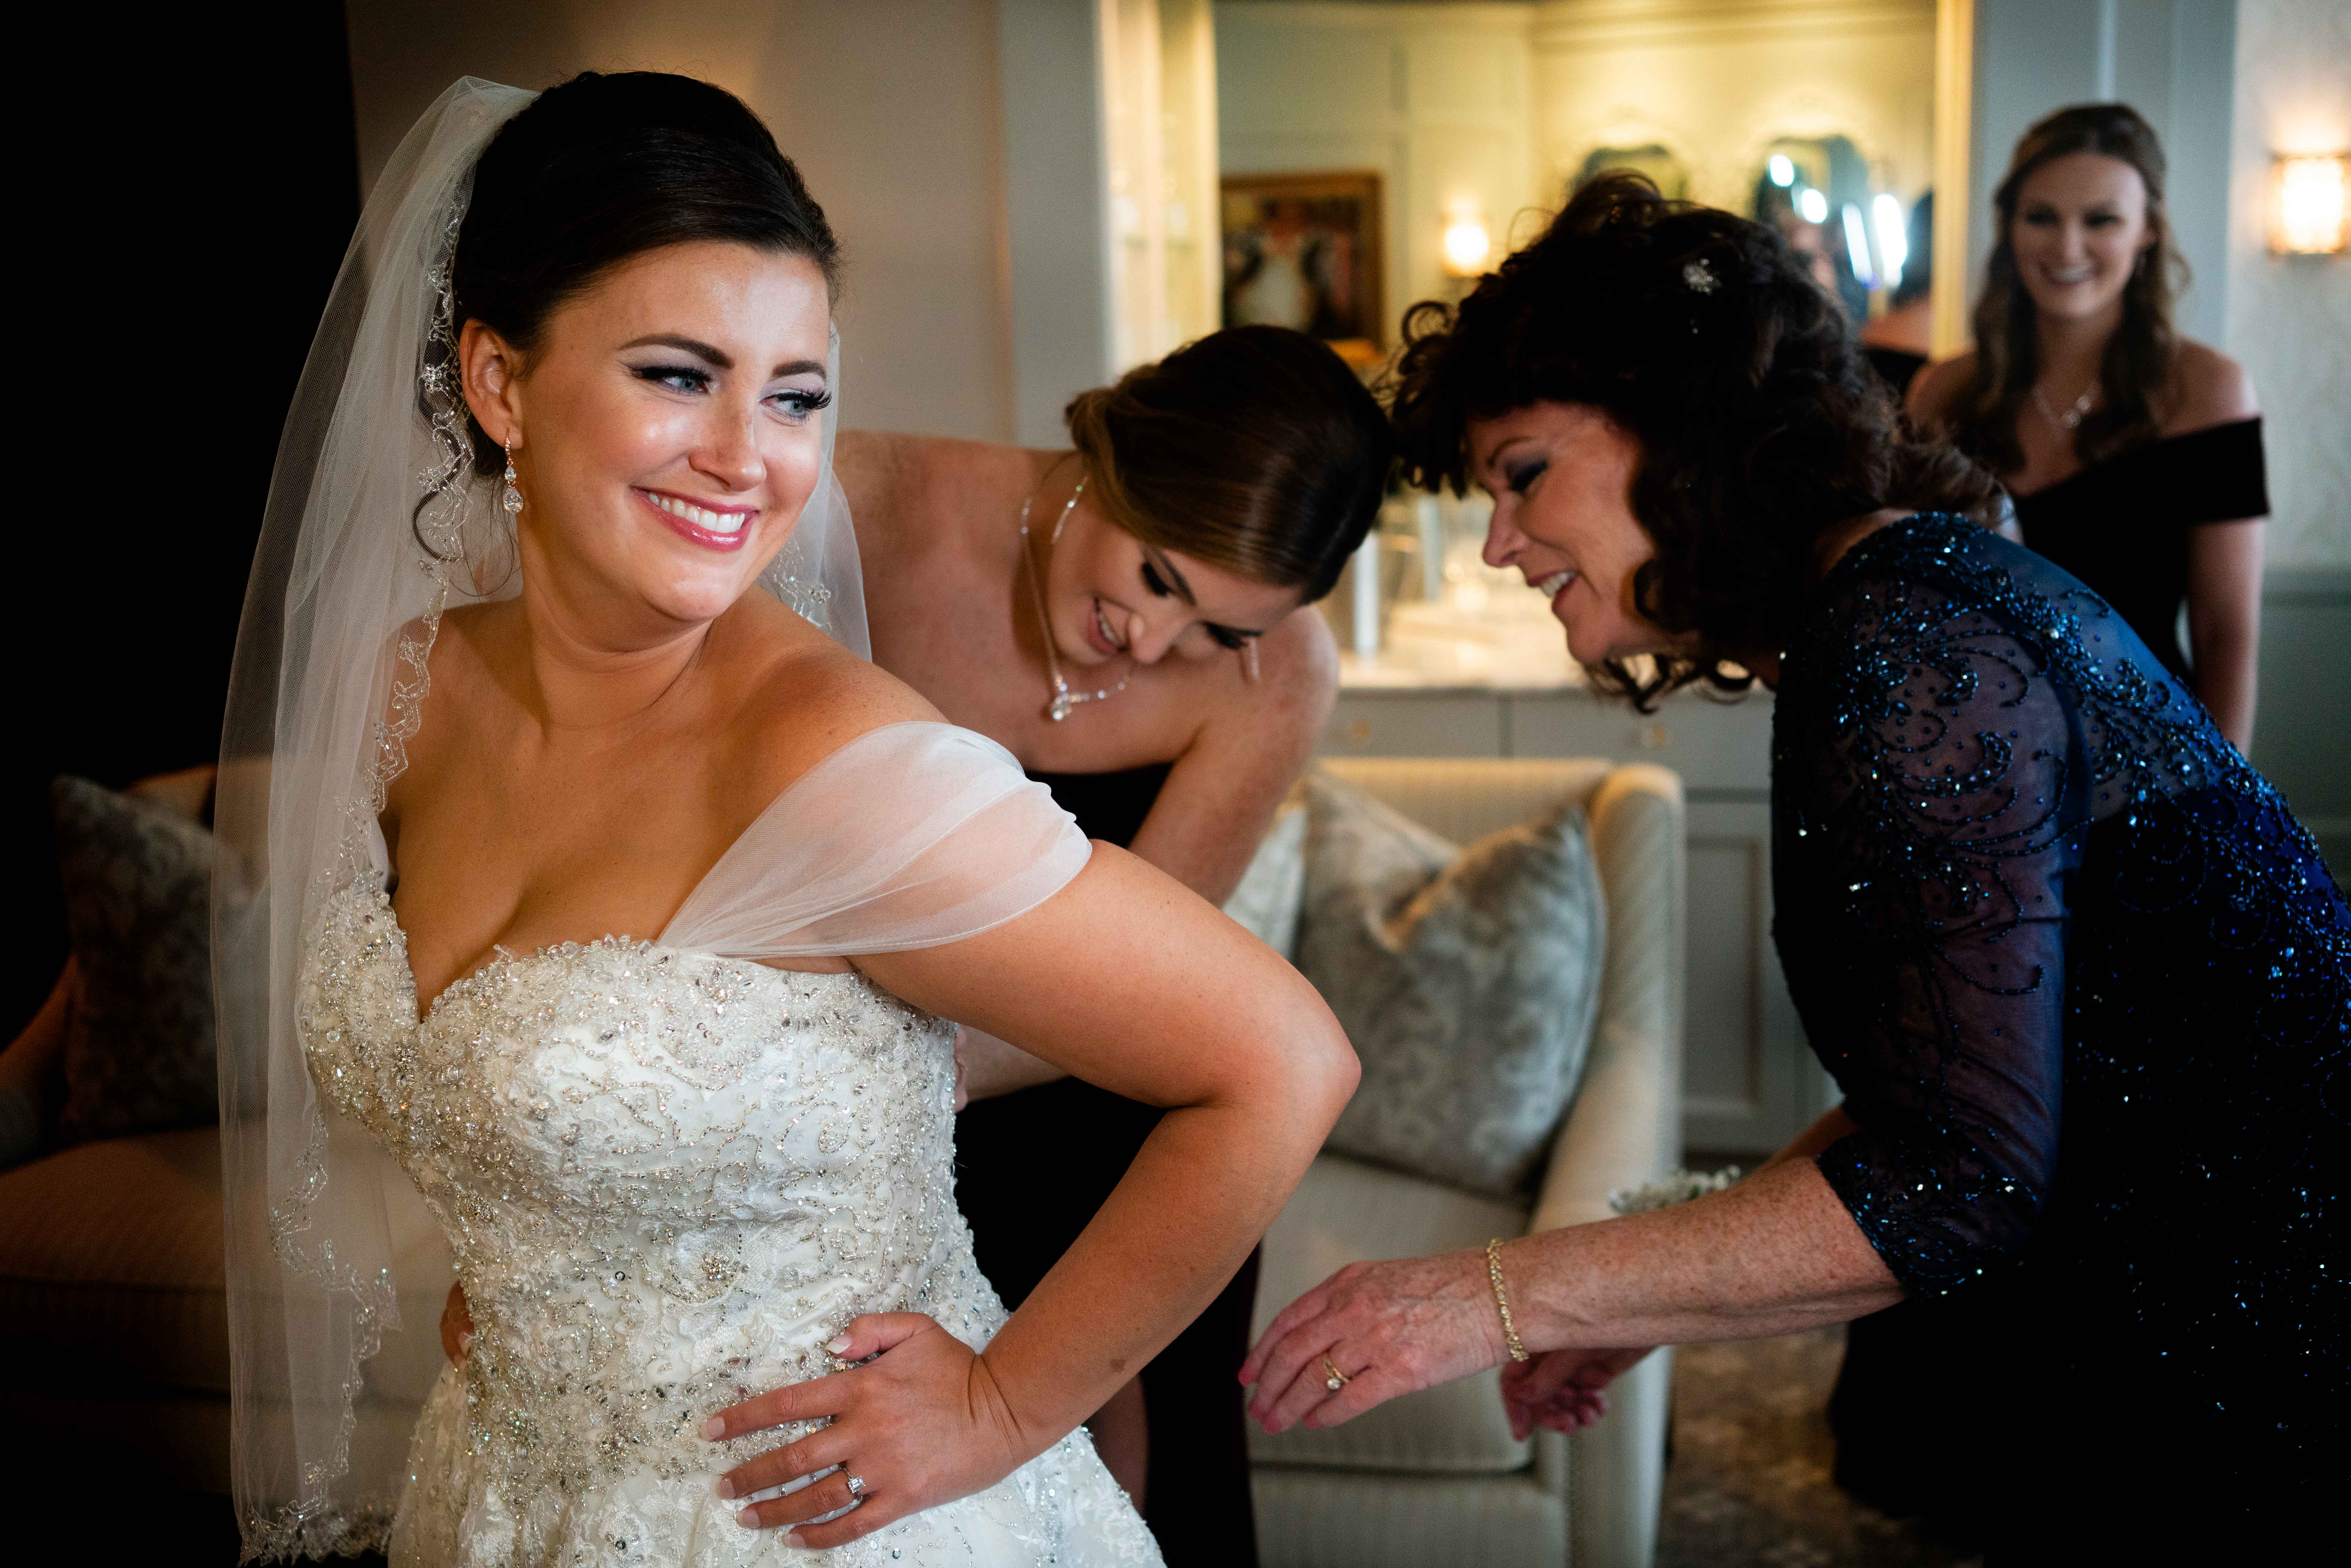 Bride getting ready with a little help from her friends - photo by MD photo films